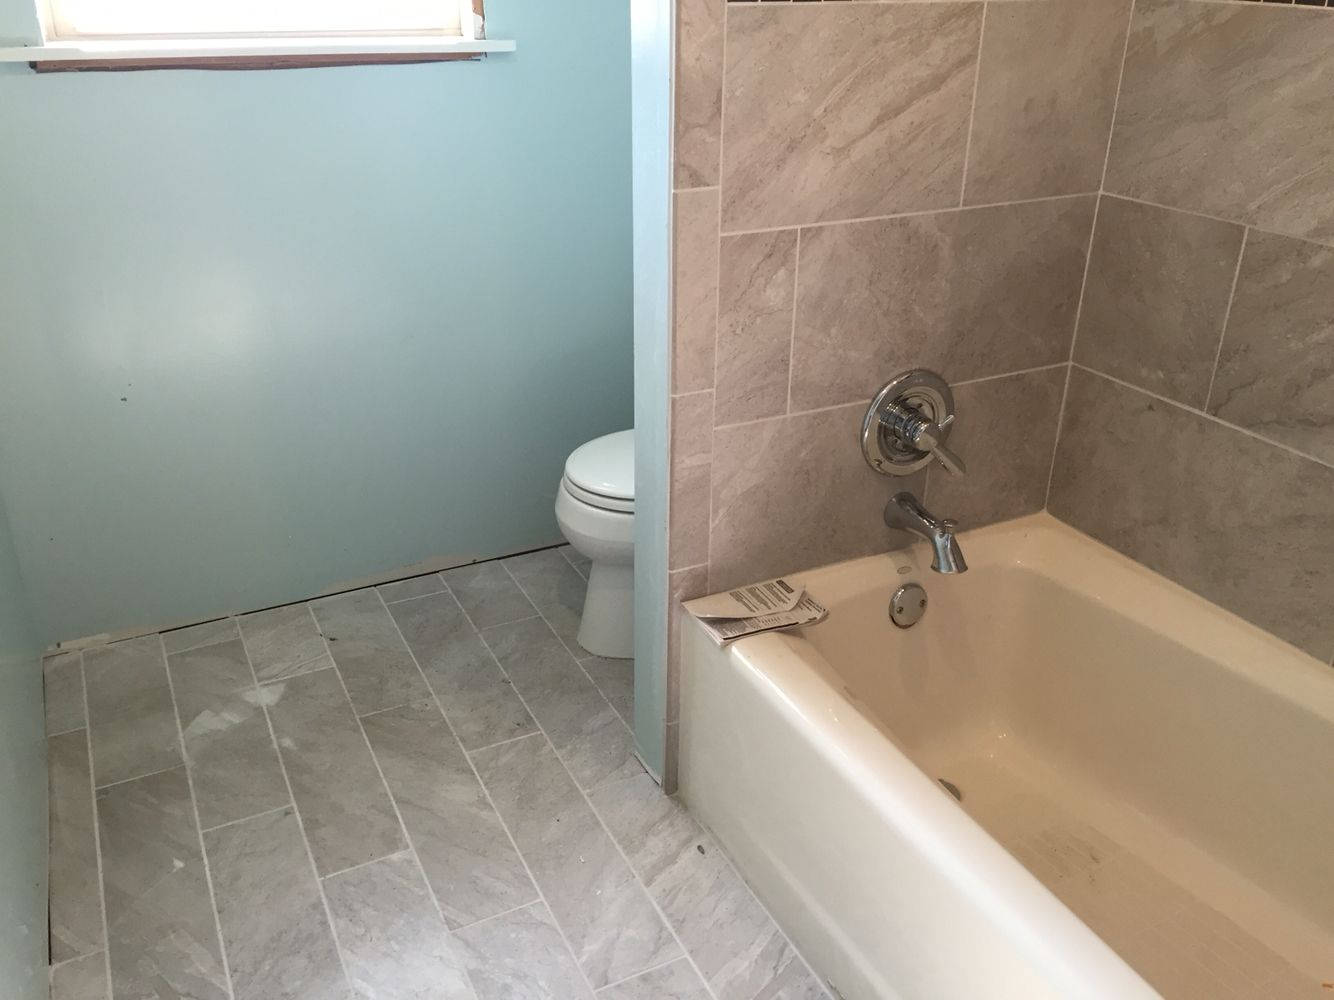 semi gloss paint bathroom. Bathroom Renovation- Large Rectangle Grey Tile From Lowes, \ Semi Gloss Paint